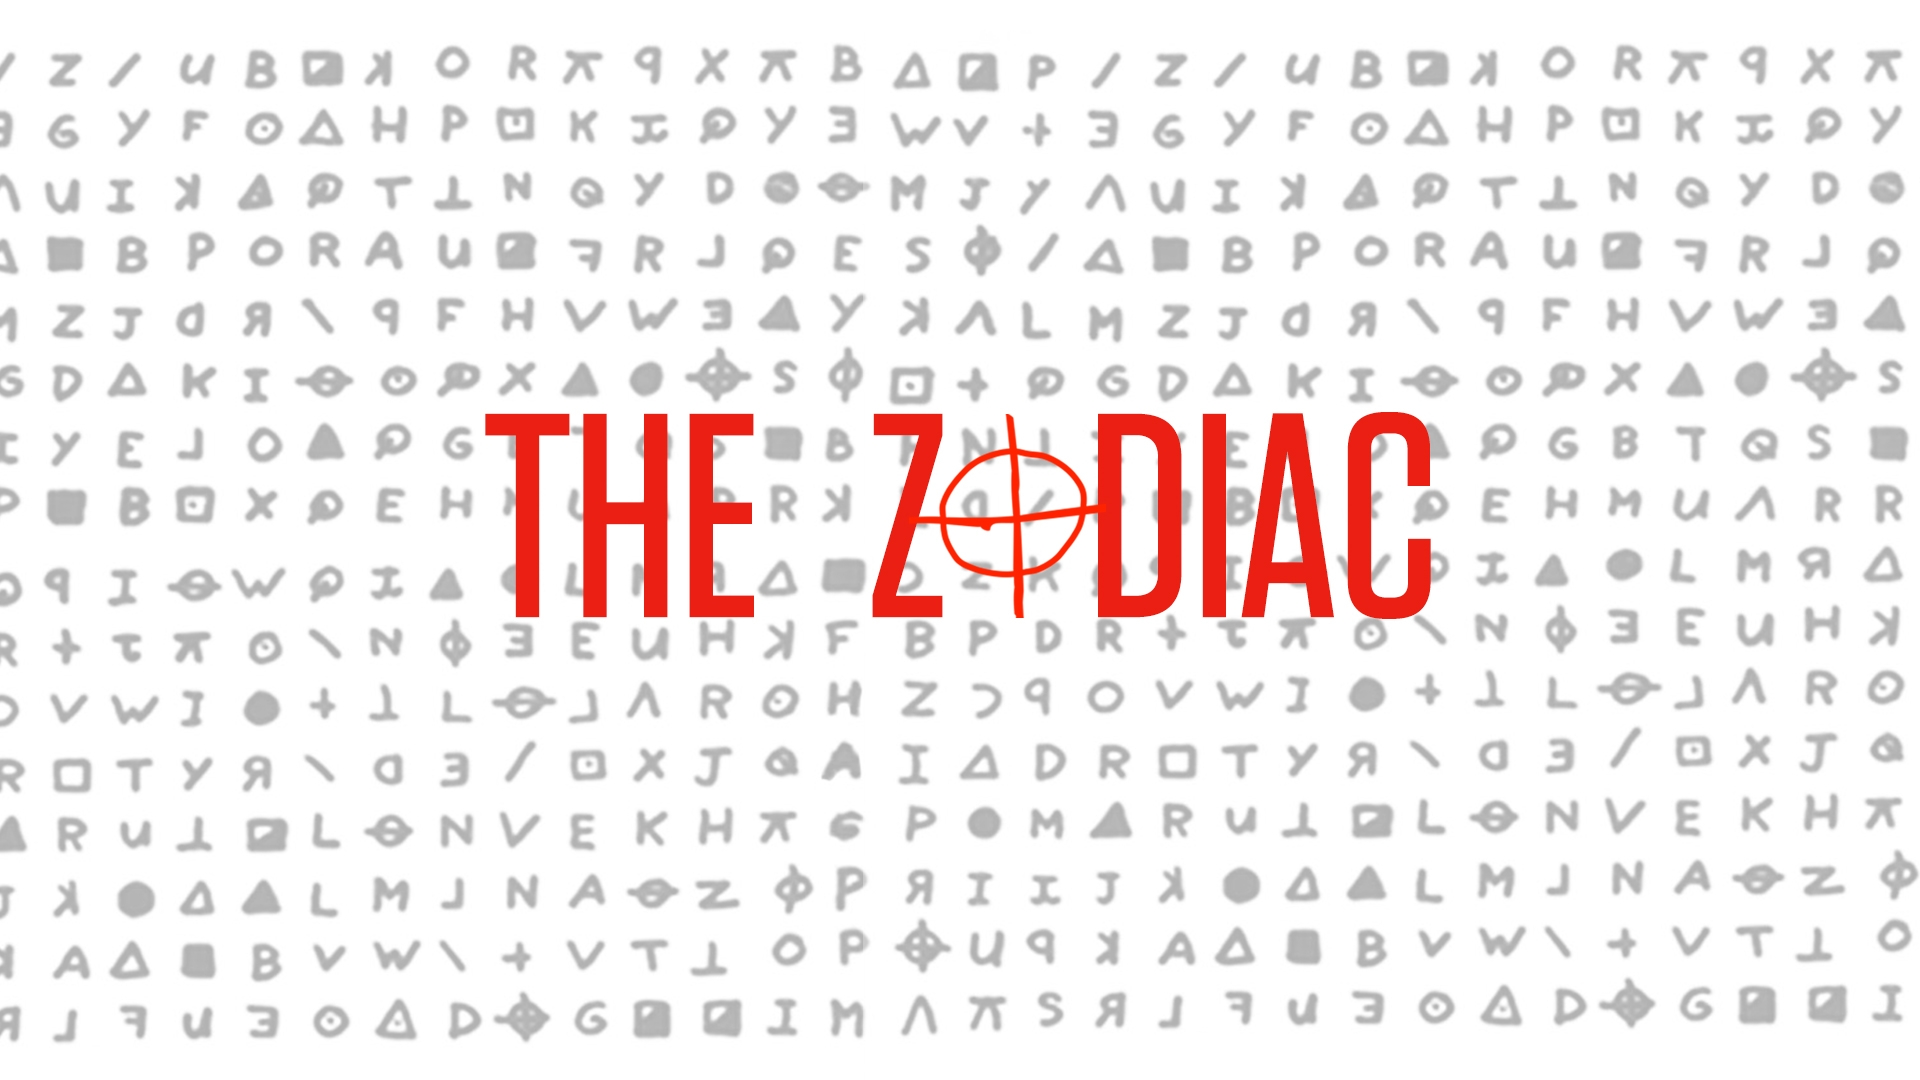 The Zodiac Killer A Timeline History In The Headlines